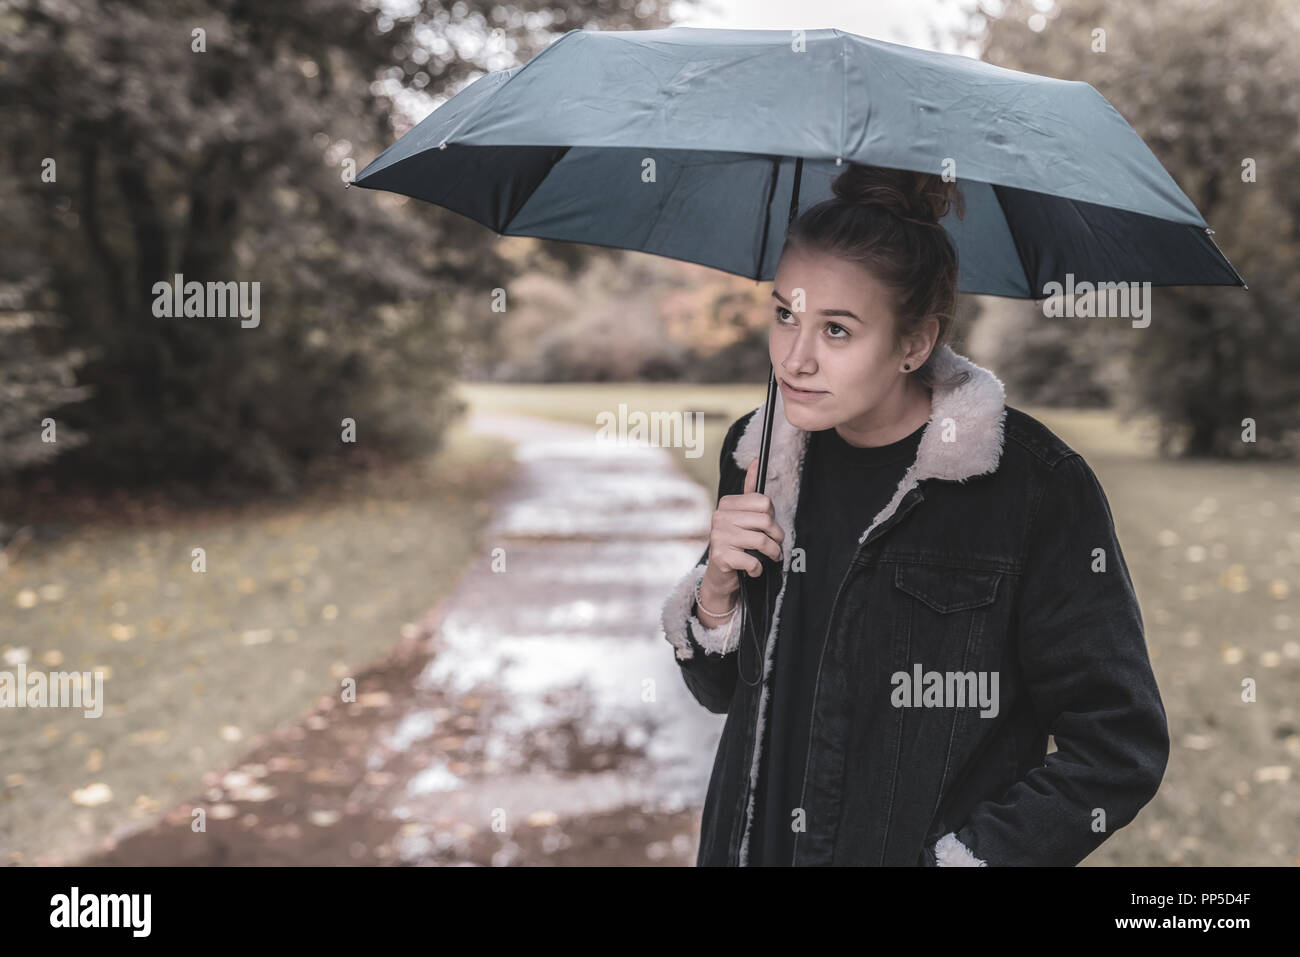 A young woman with an umbrella is waiting for better weather in a park - Stock Image